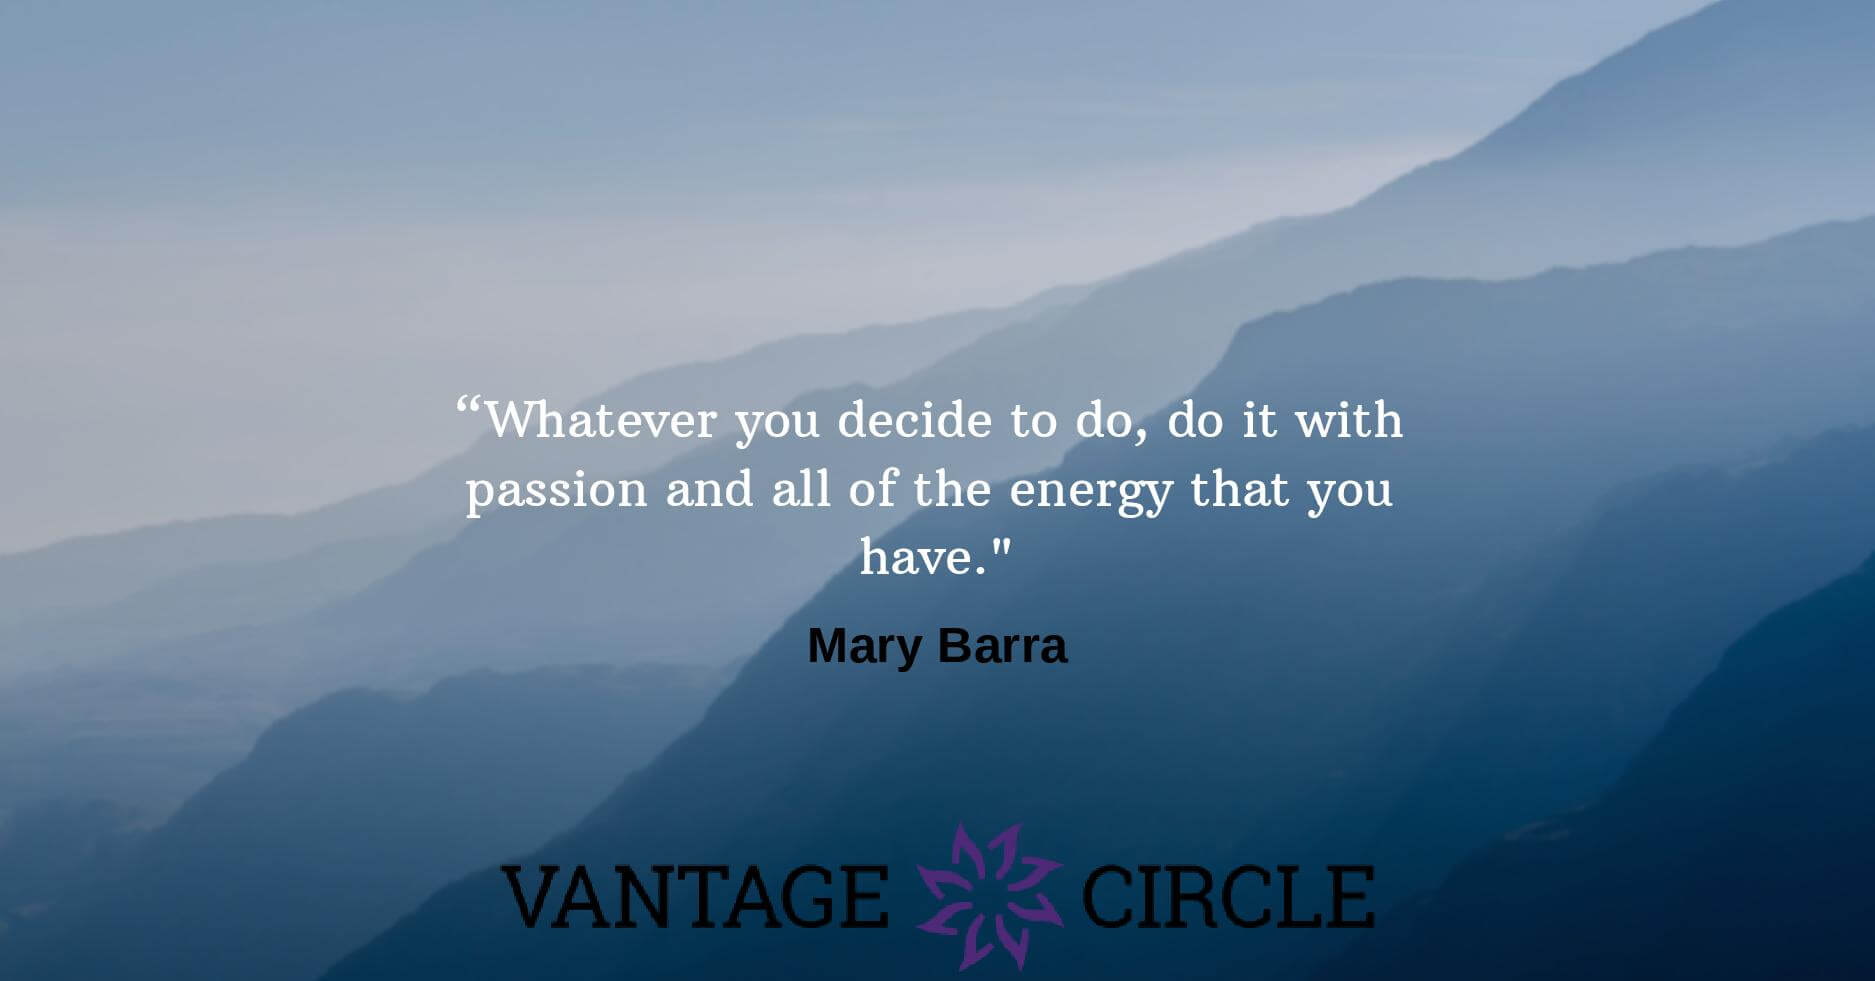 Employee-motivational-quotes-Mary-Barra